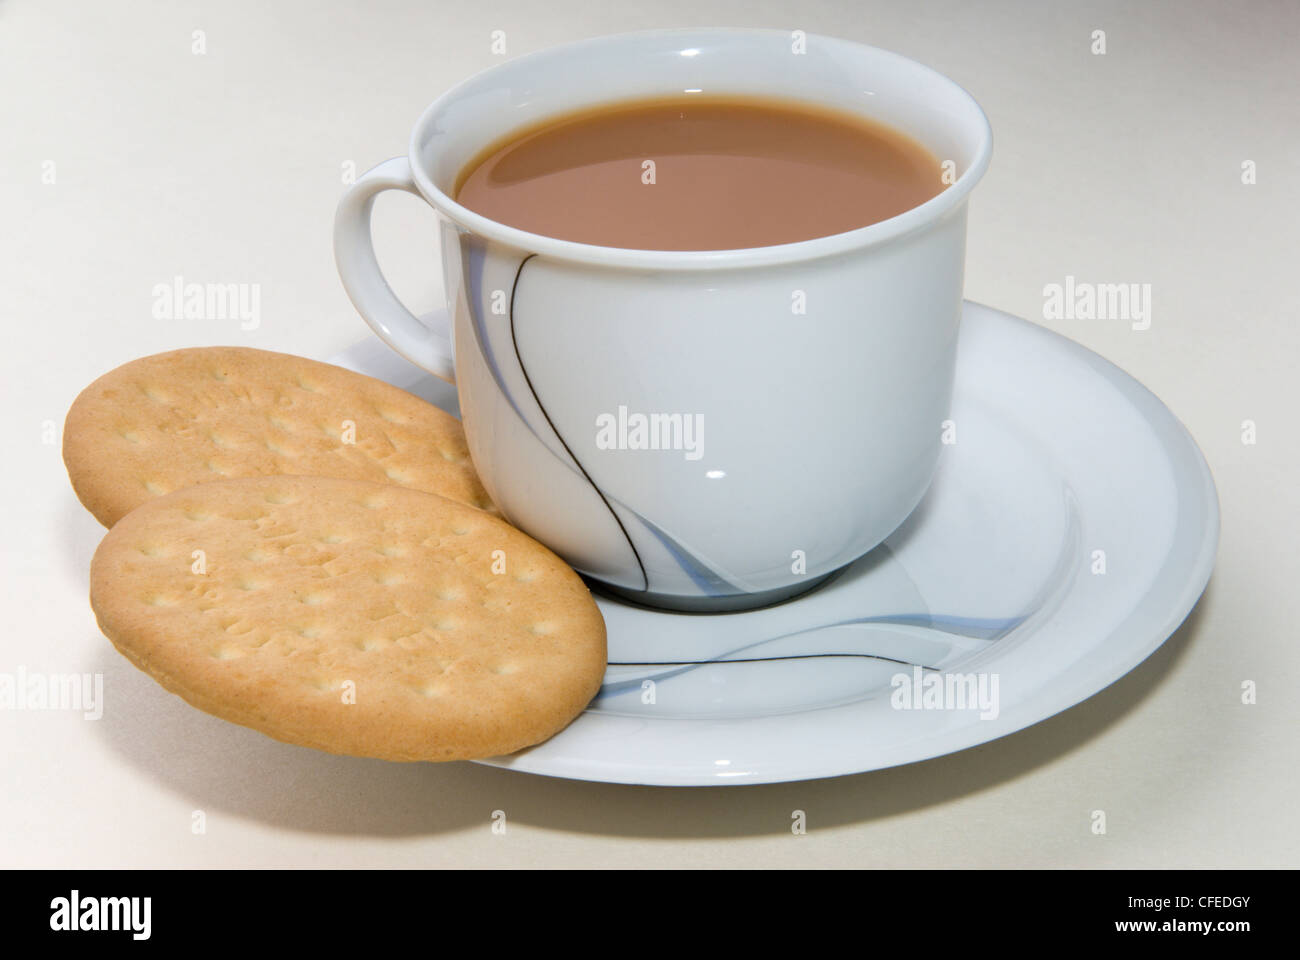 Time for tea. A nice cup of tea ready and waiting to refresh with ...